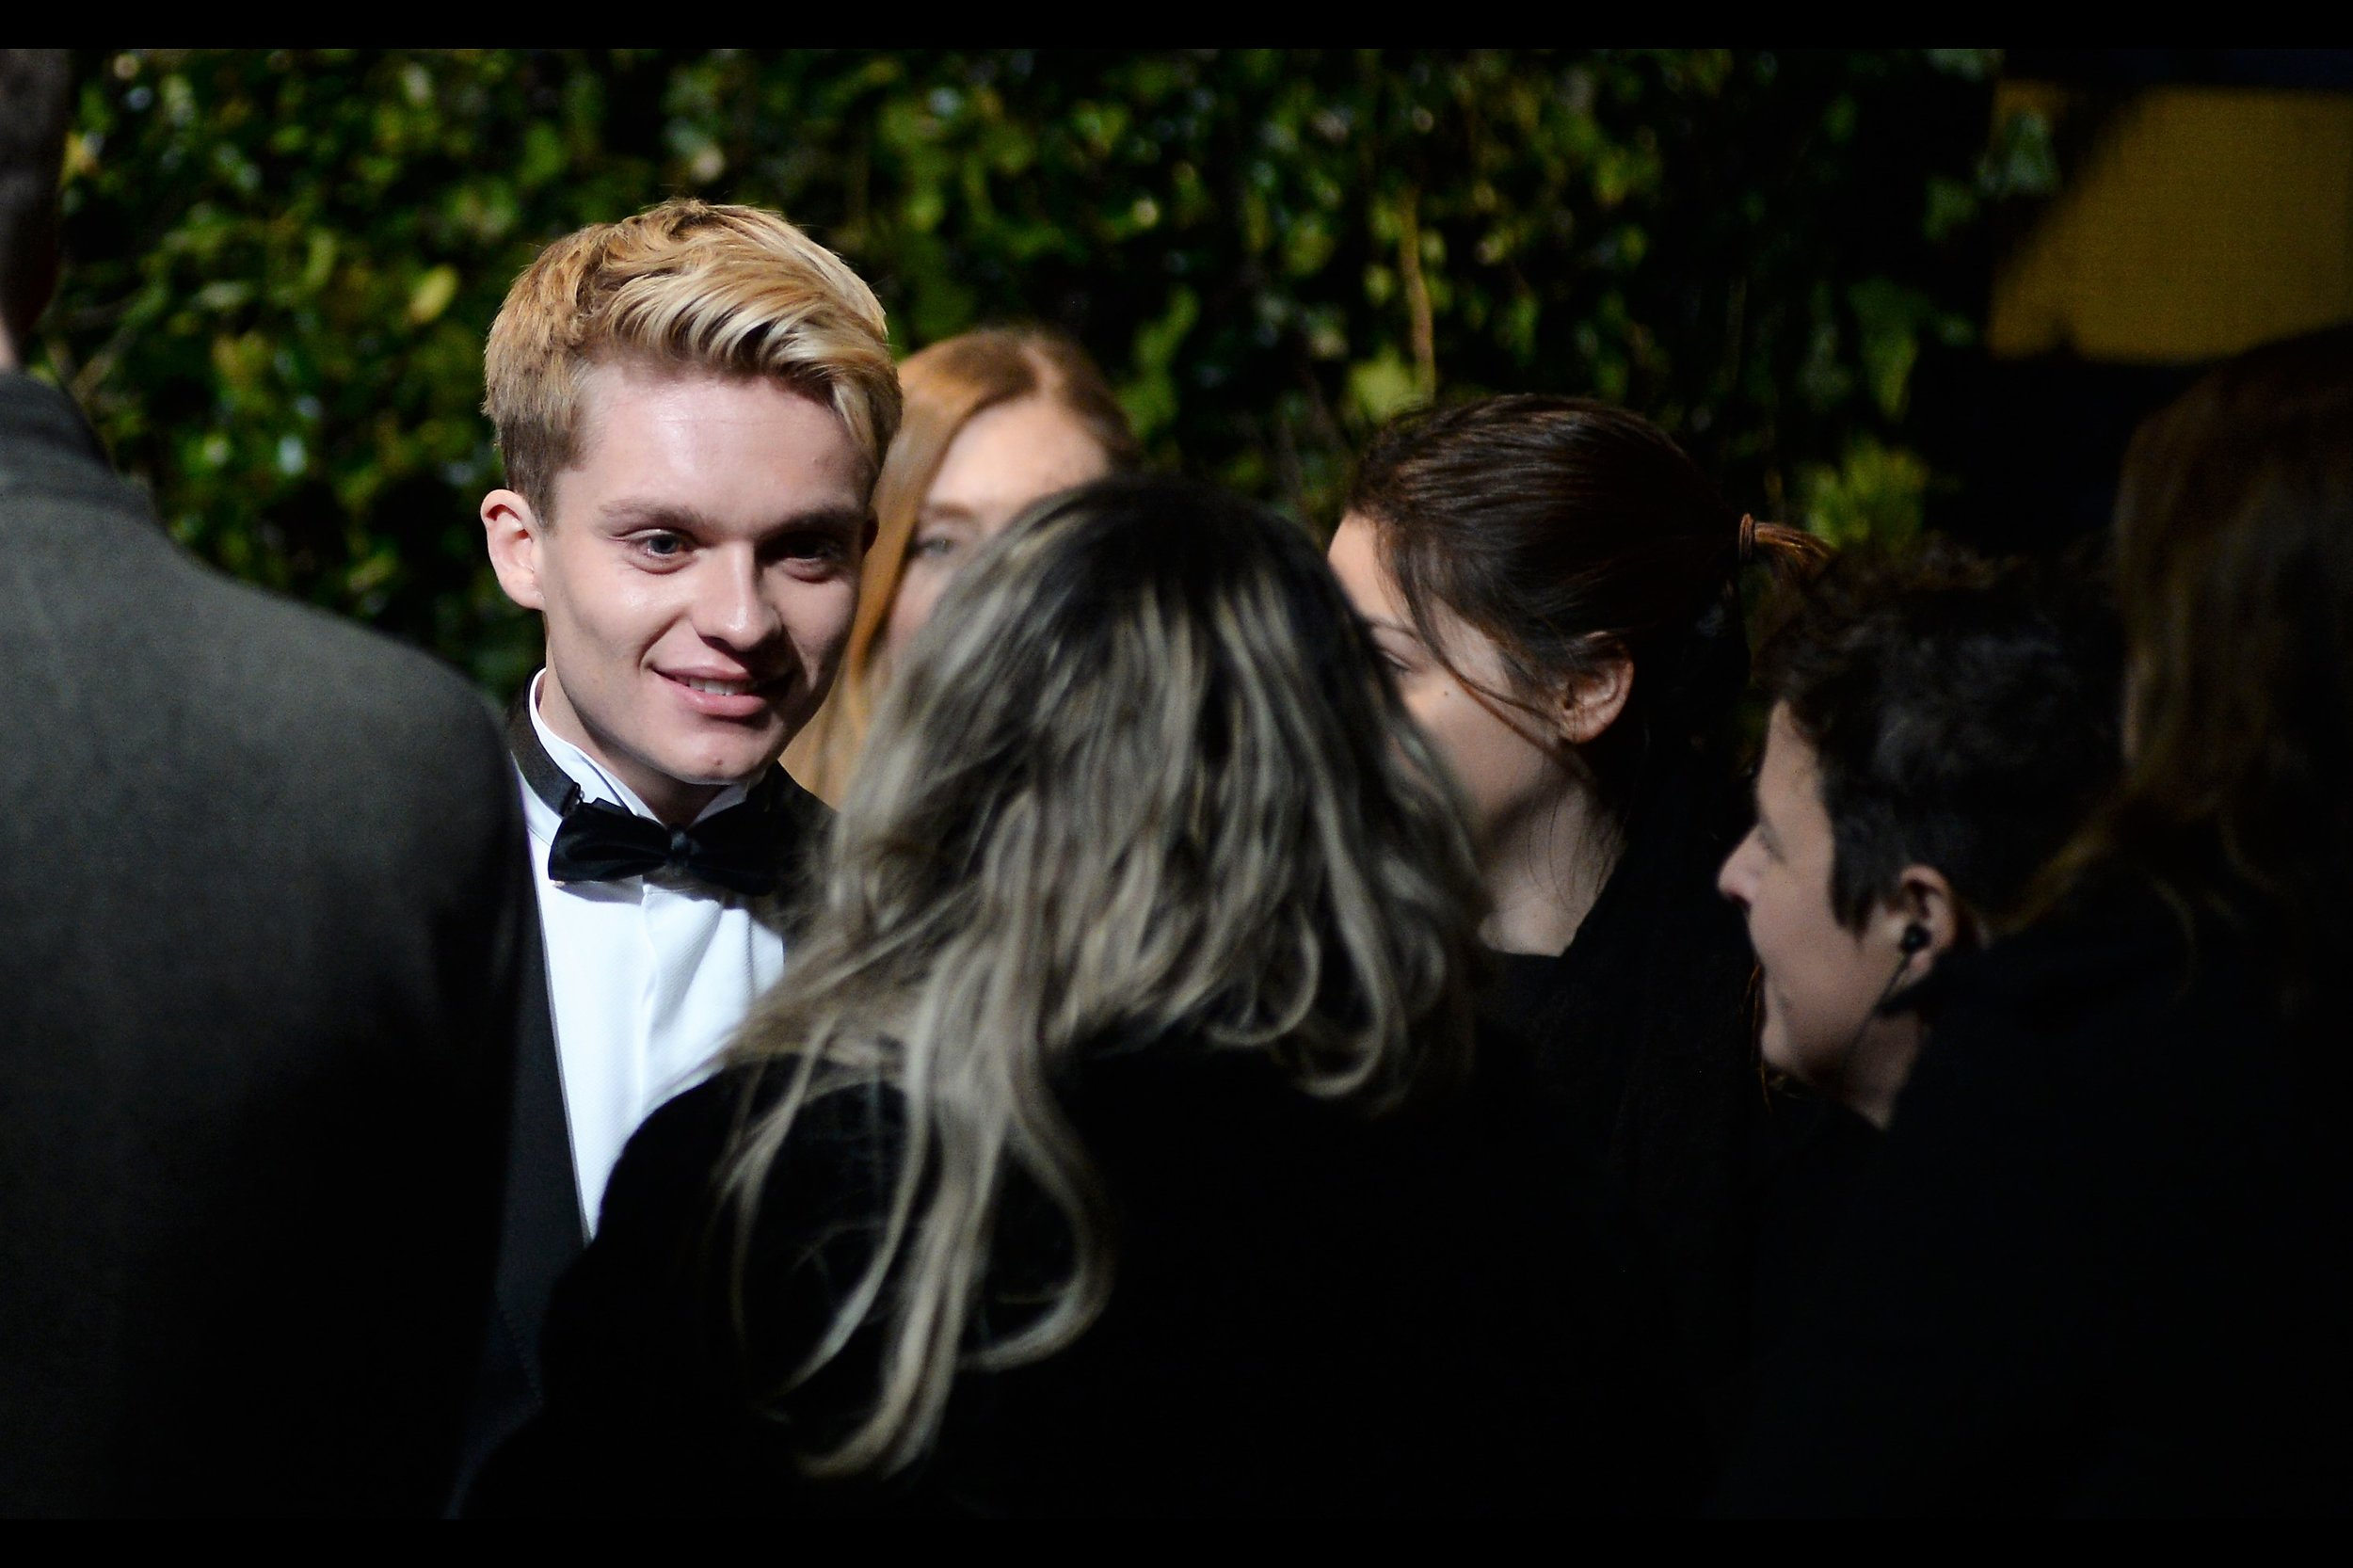 Edited to add : Tom Glynn-Carney won an award  (or, to be fair, in a gallery I saw online he was clutching an award and the caption didn't say whether it was his or not and what for. Damn... I need better researchers...) (edited to edit to add : he won the 'Emerging Talent' award)